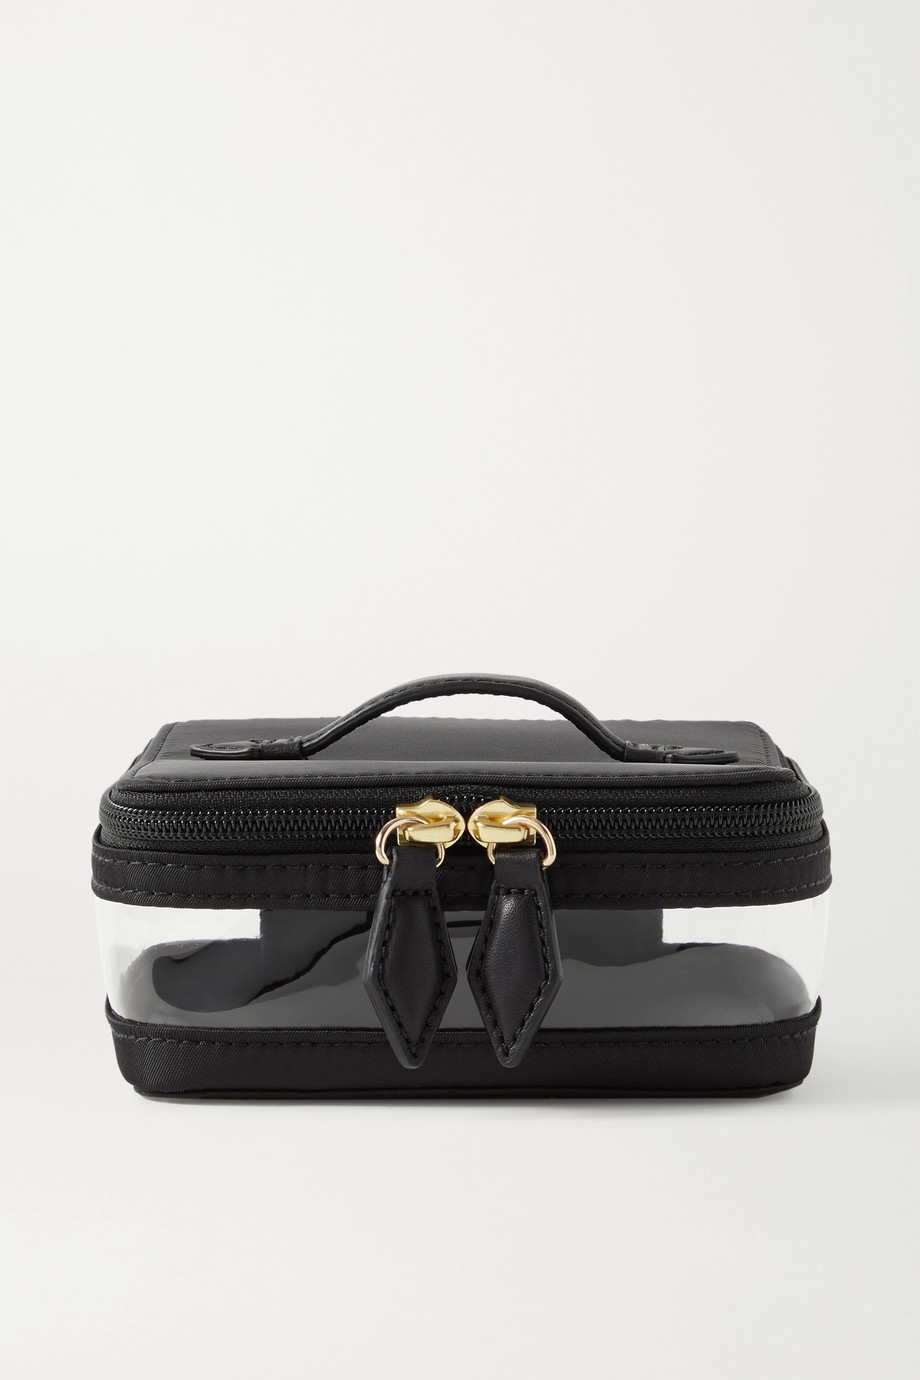 Paravel Mini See-All leather-trimmed nylon and TPU cosmetics case